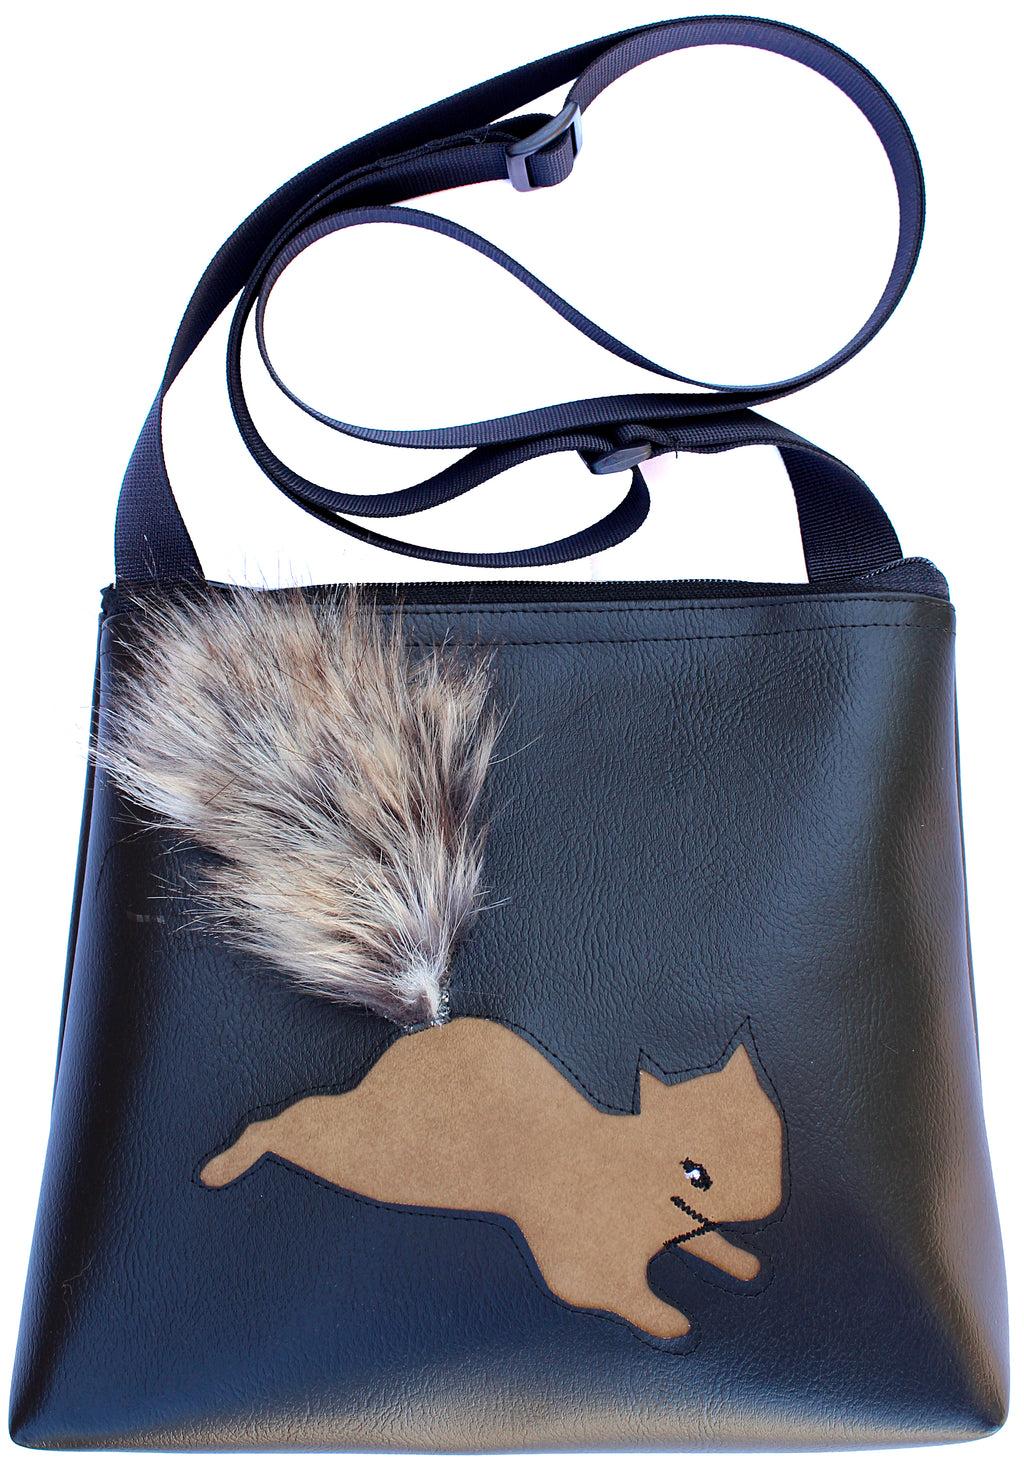 Squirrel on Black mid-size crossbody